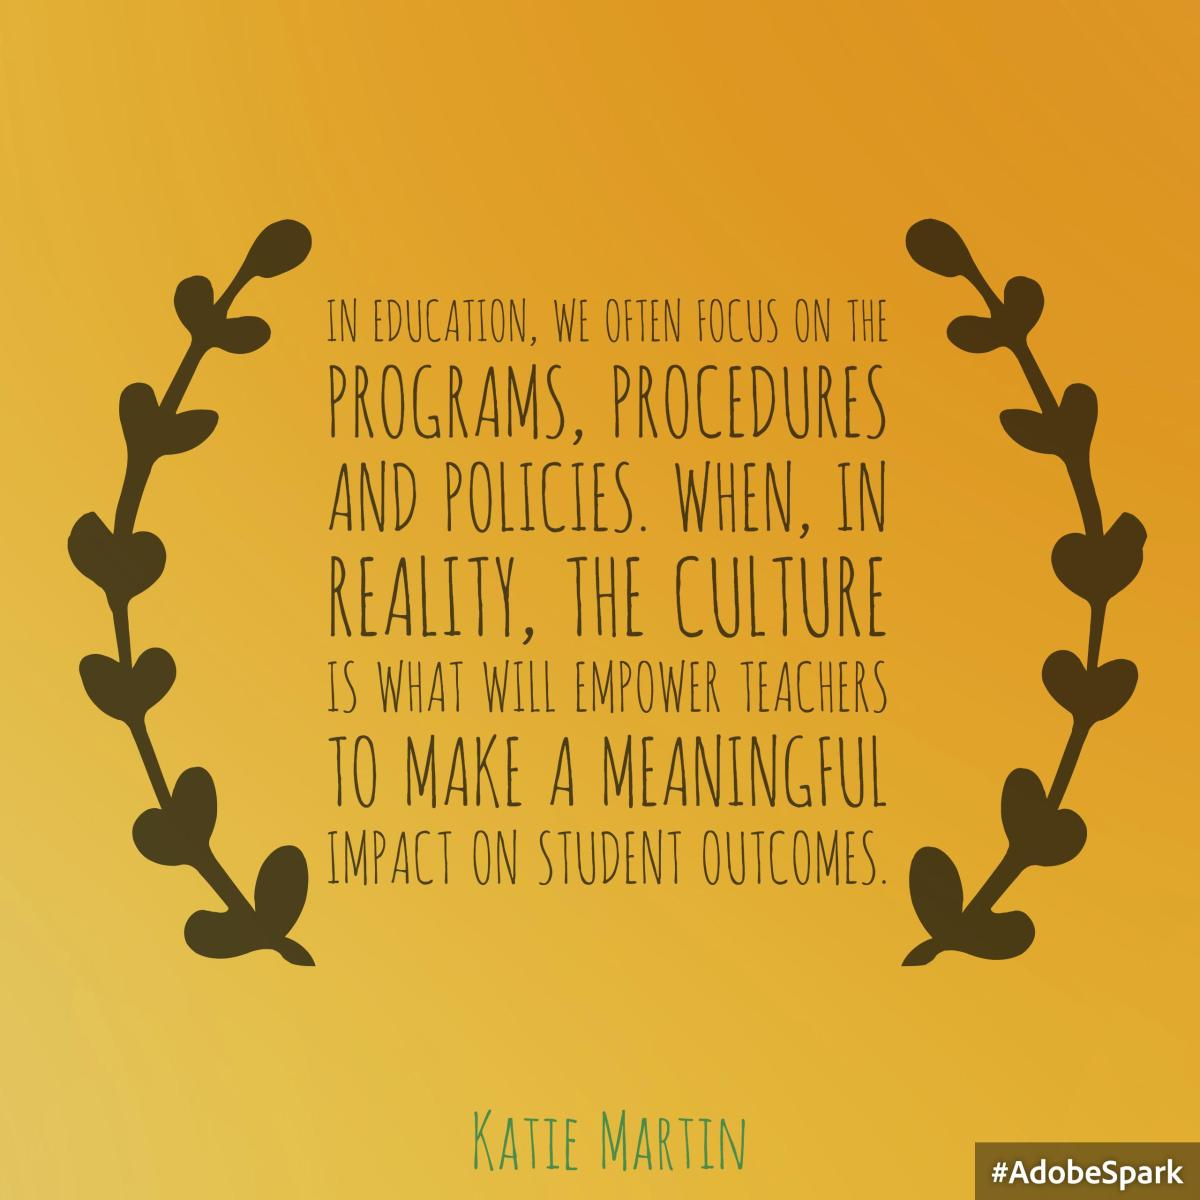 Culture is Everything in Schools – KATIE MARTIN